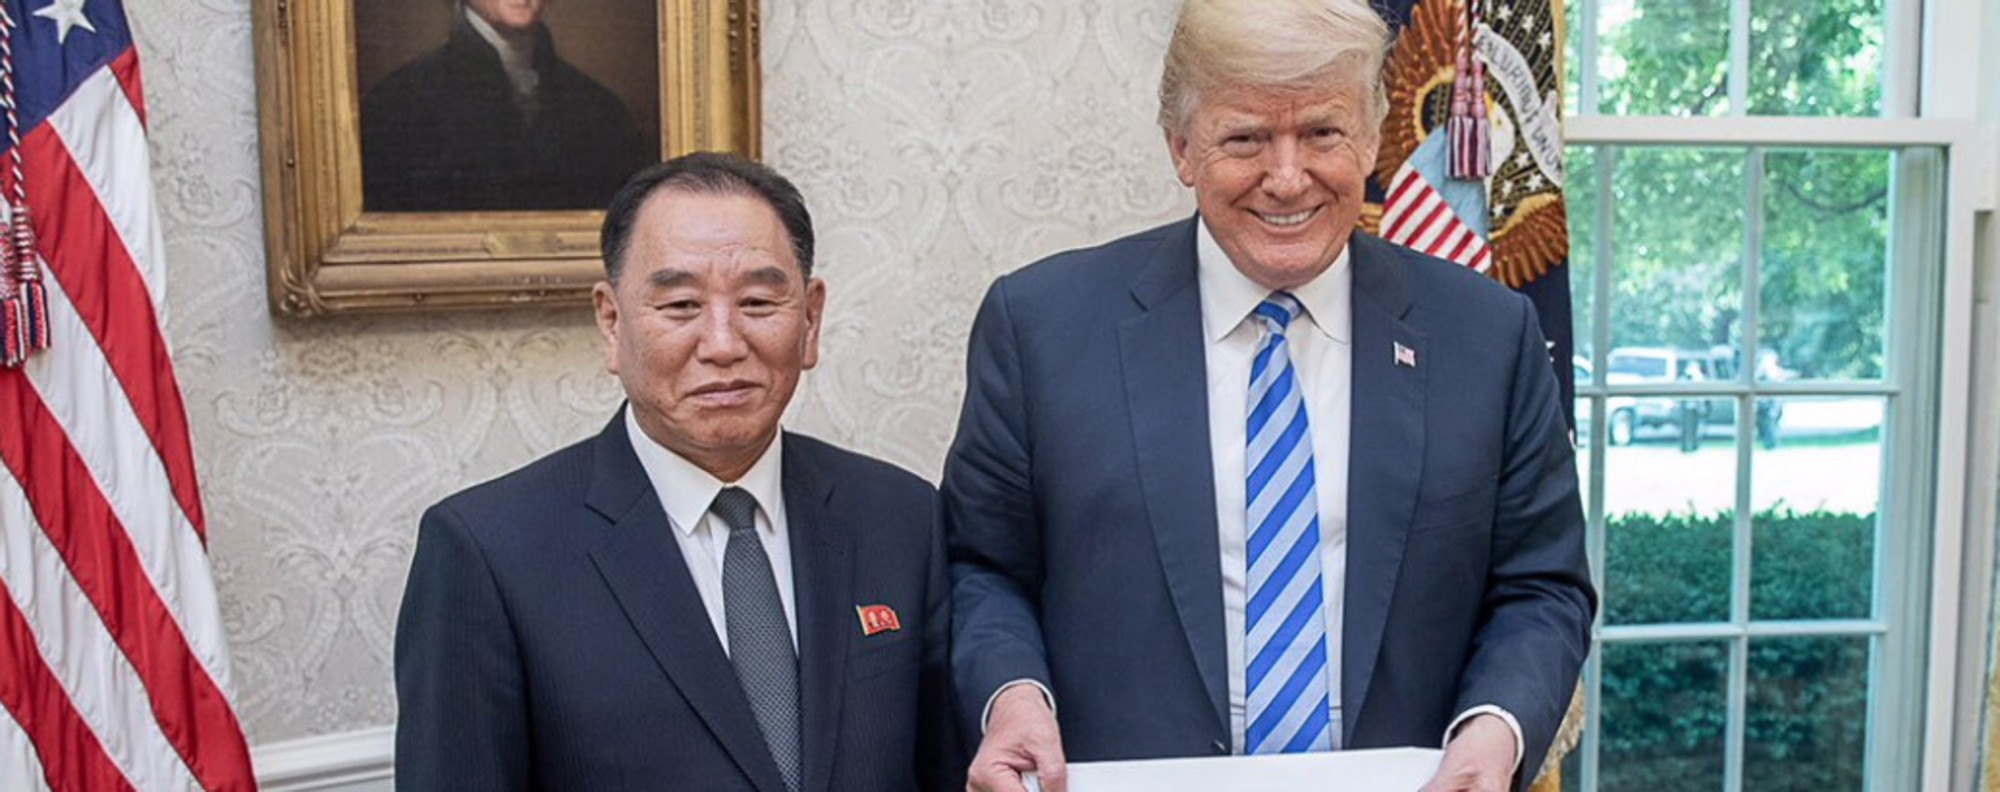 Trump gets a letter from North Korea. Photo: Twitter